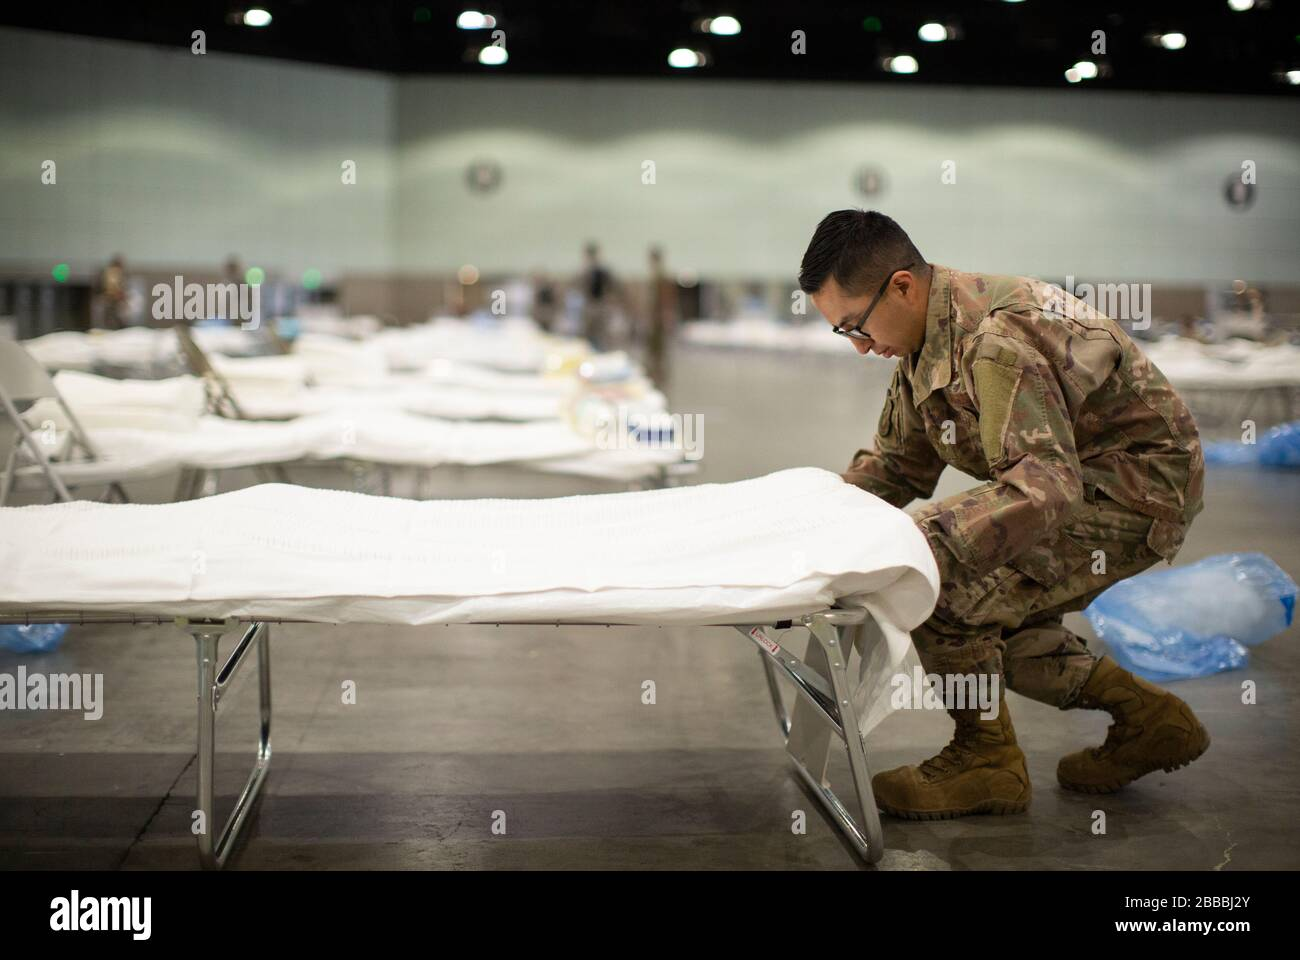 U.S. Air Force Tech. Sgt. Mario Lopez-Casas, a heating, ventilation, air conditioning and refrigeration specialist with the 146th Civil Engineer Squadron in the California Air National Guard's 146th Airlift Wing, puts sheets on a hospital bed while setting up a Federal Medical Station, March 29, 2020, inside the Los Angeles Convention Center as part of California's statewide COVID-19 response effort. This is the third medical station site the Airmen have set up in the state. (U.S. Air National Guard video by Staff Sgt. Crystal Housman) Stock Photo